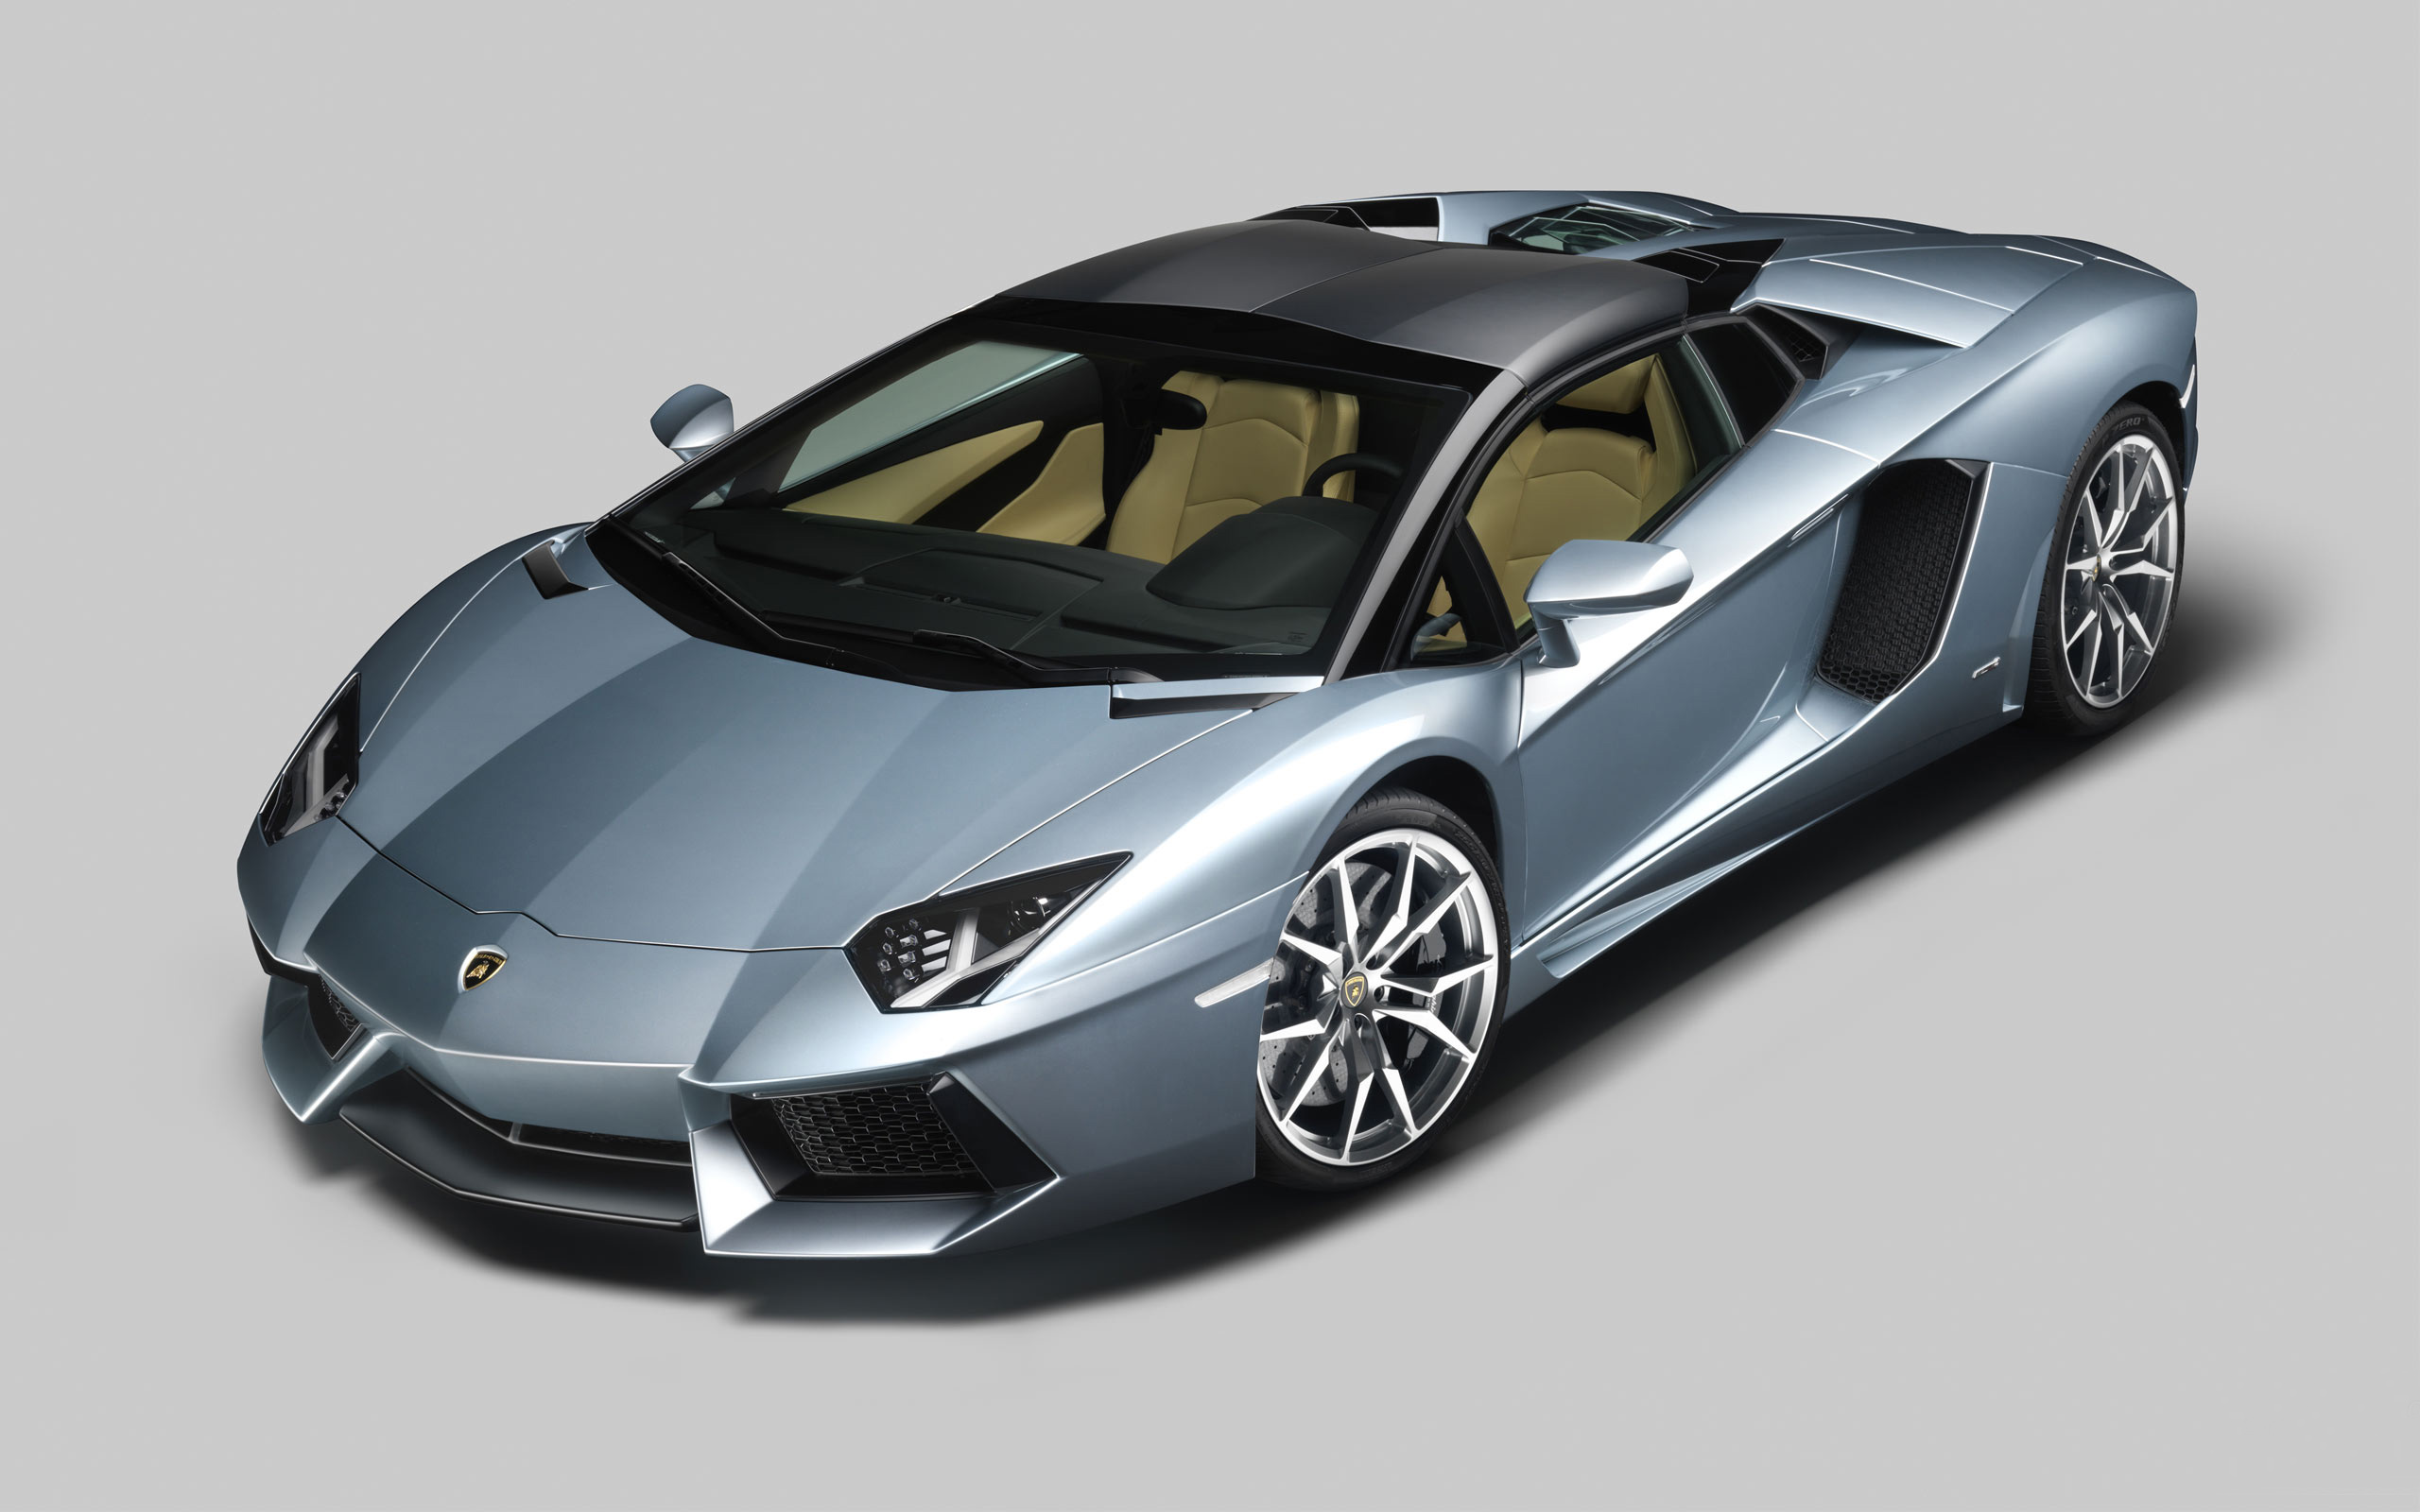 lamborghini truck related images,start 0 - weili automotive network